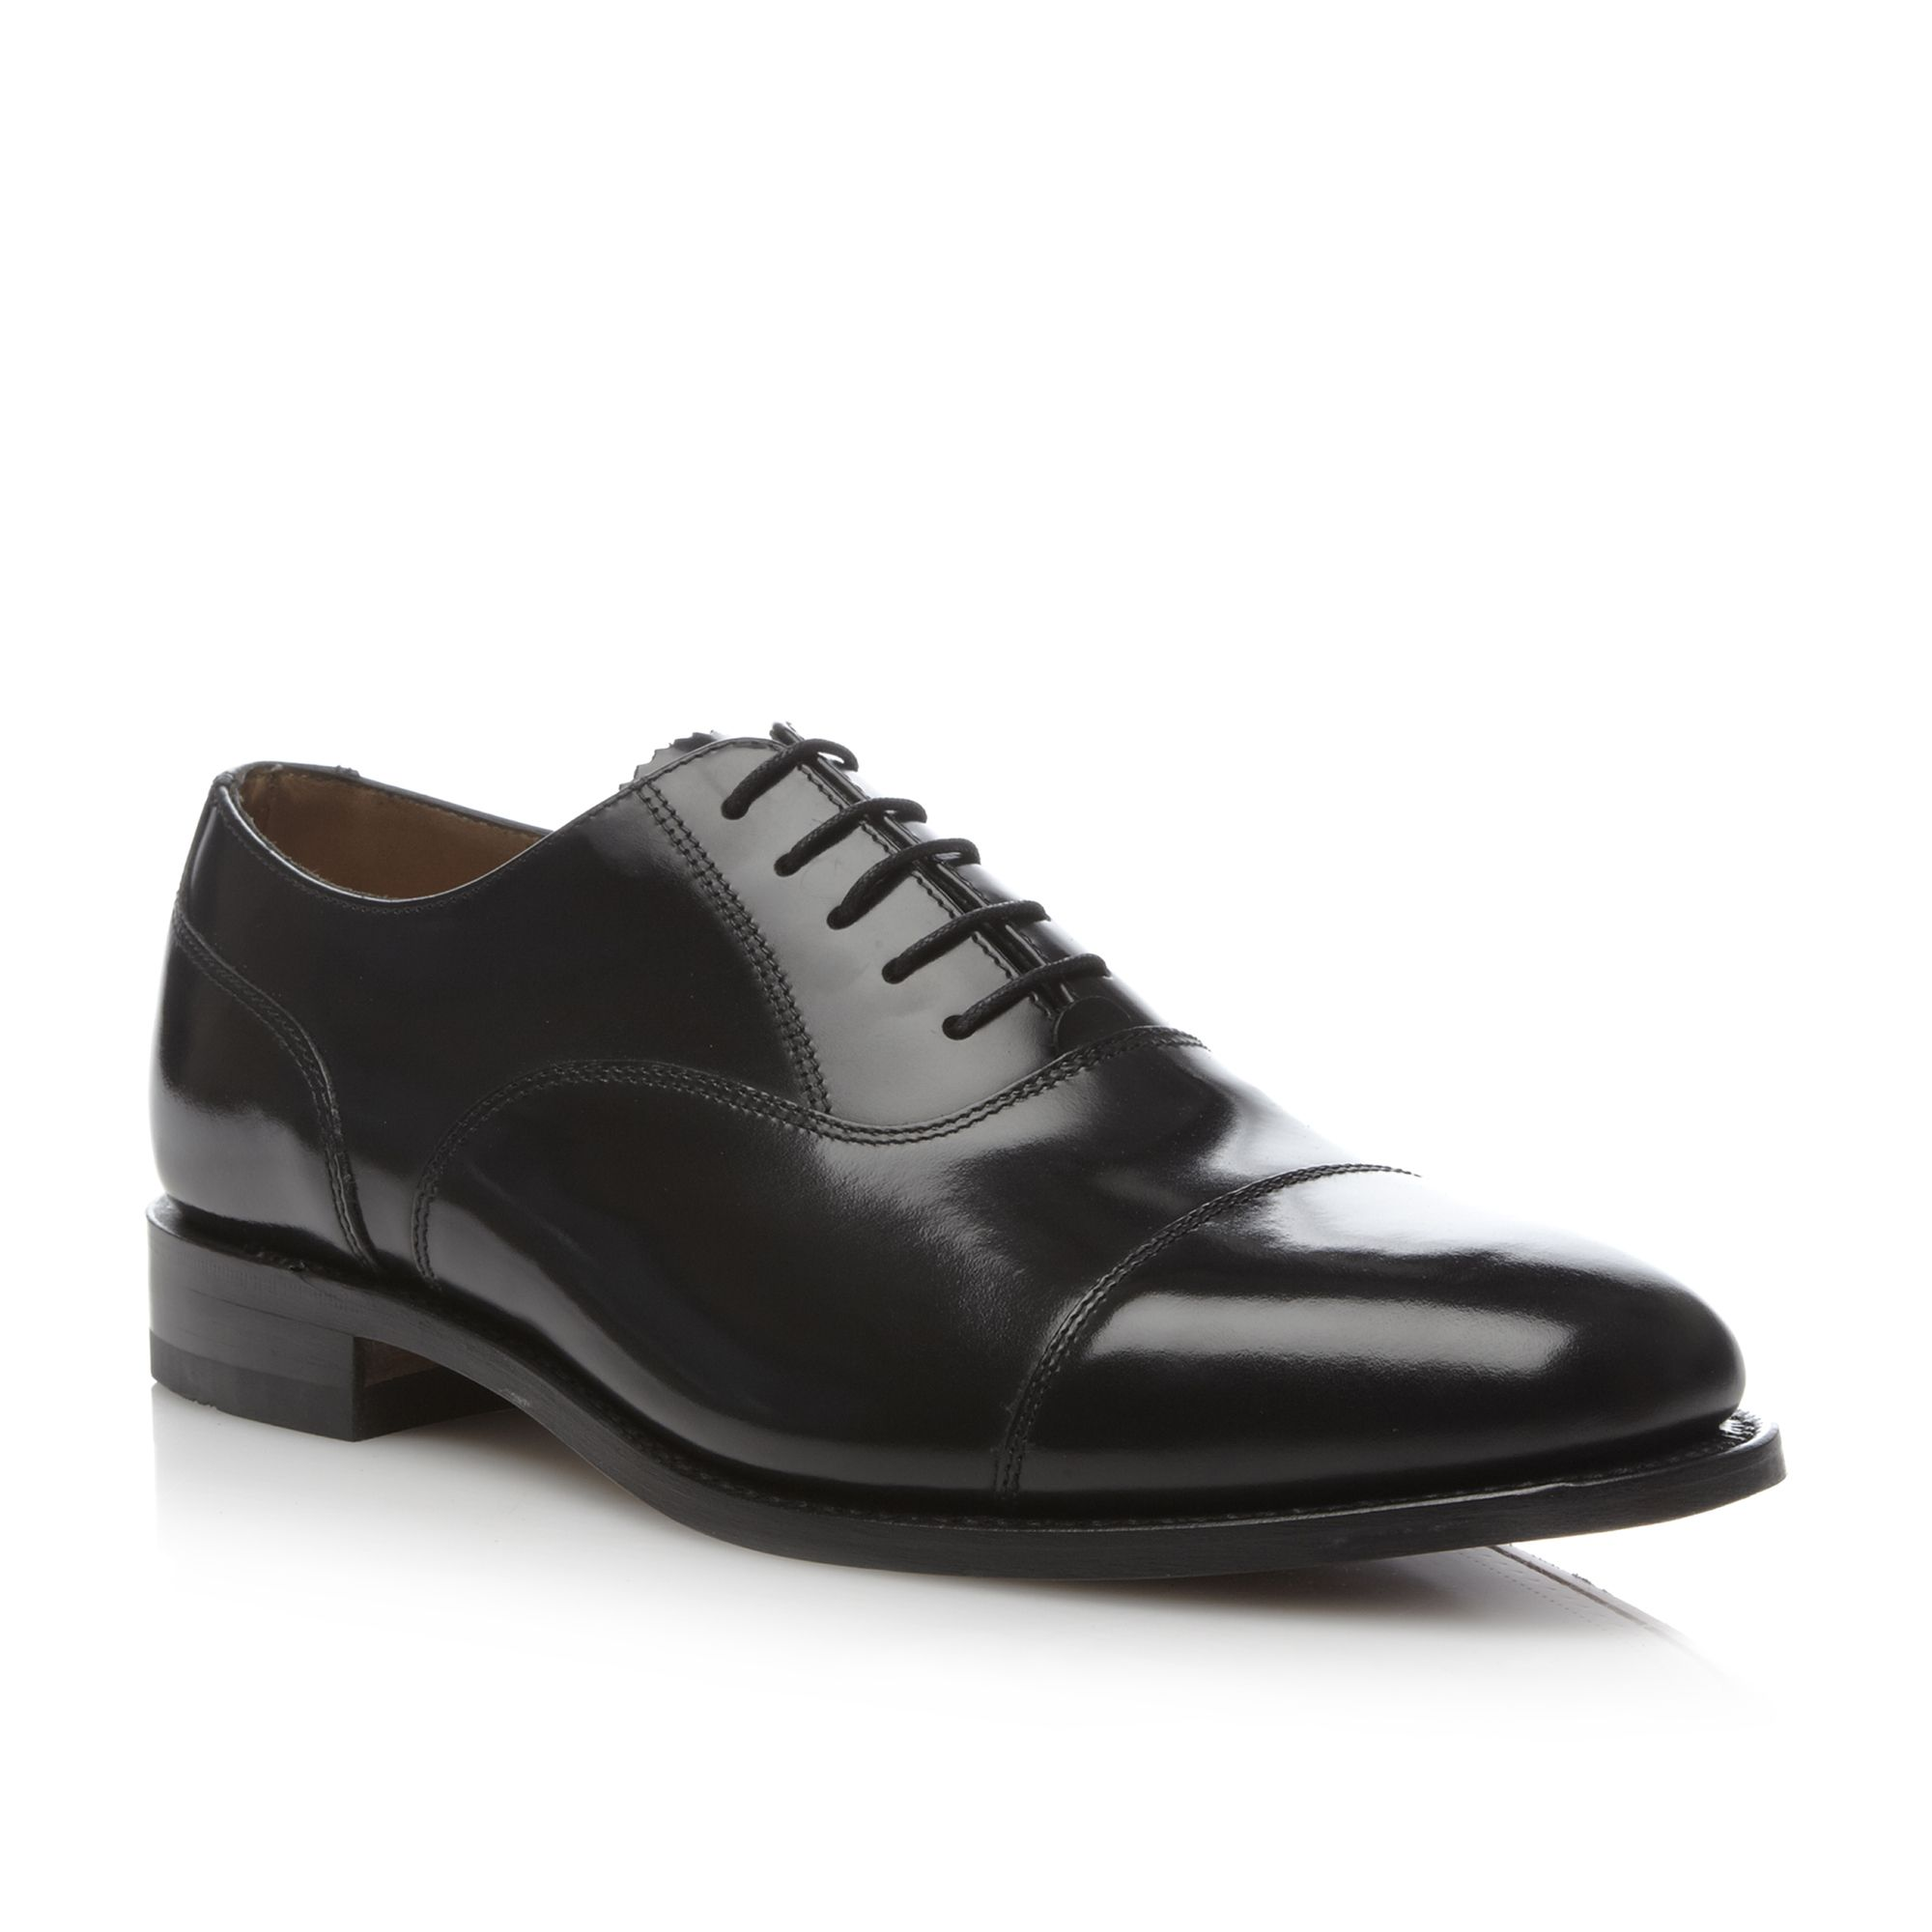 Loake 200 formal shoes